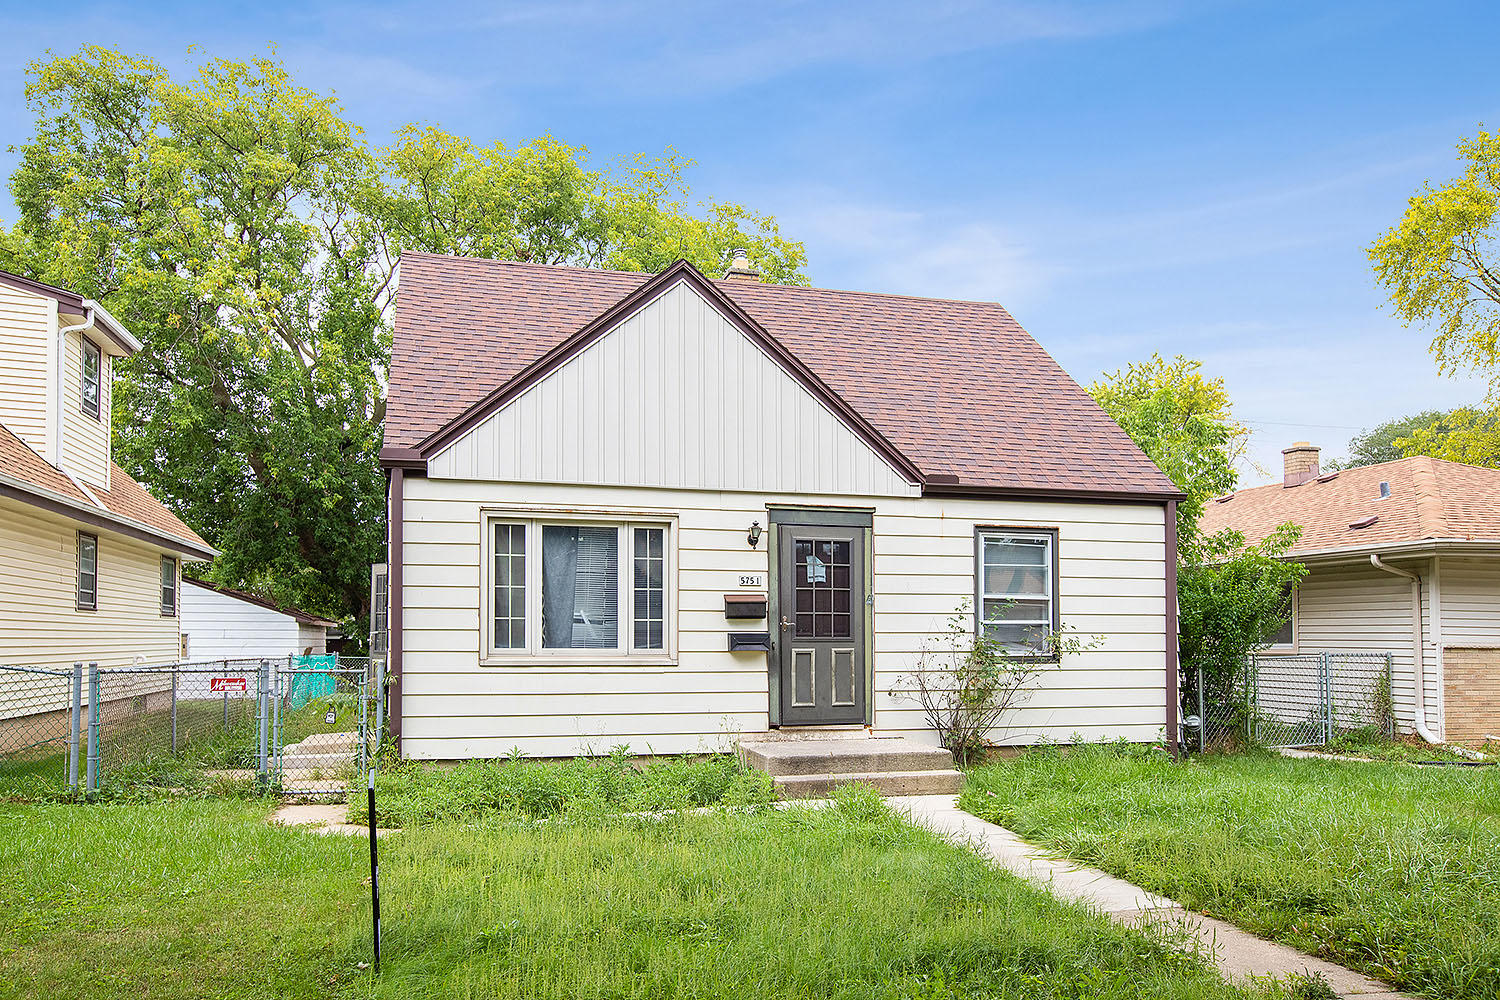 5751 75th St, Milwaukee, Wisconsin 53218, 3 Bedrooms Bedrooms, 5 Rooms Rooms,1 BathroomBathrooms,Single-Family,For Sale,75th St,1632069